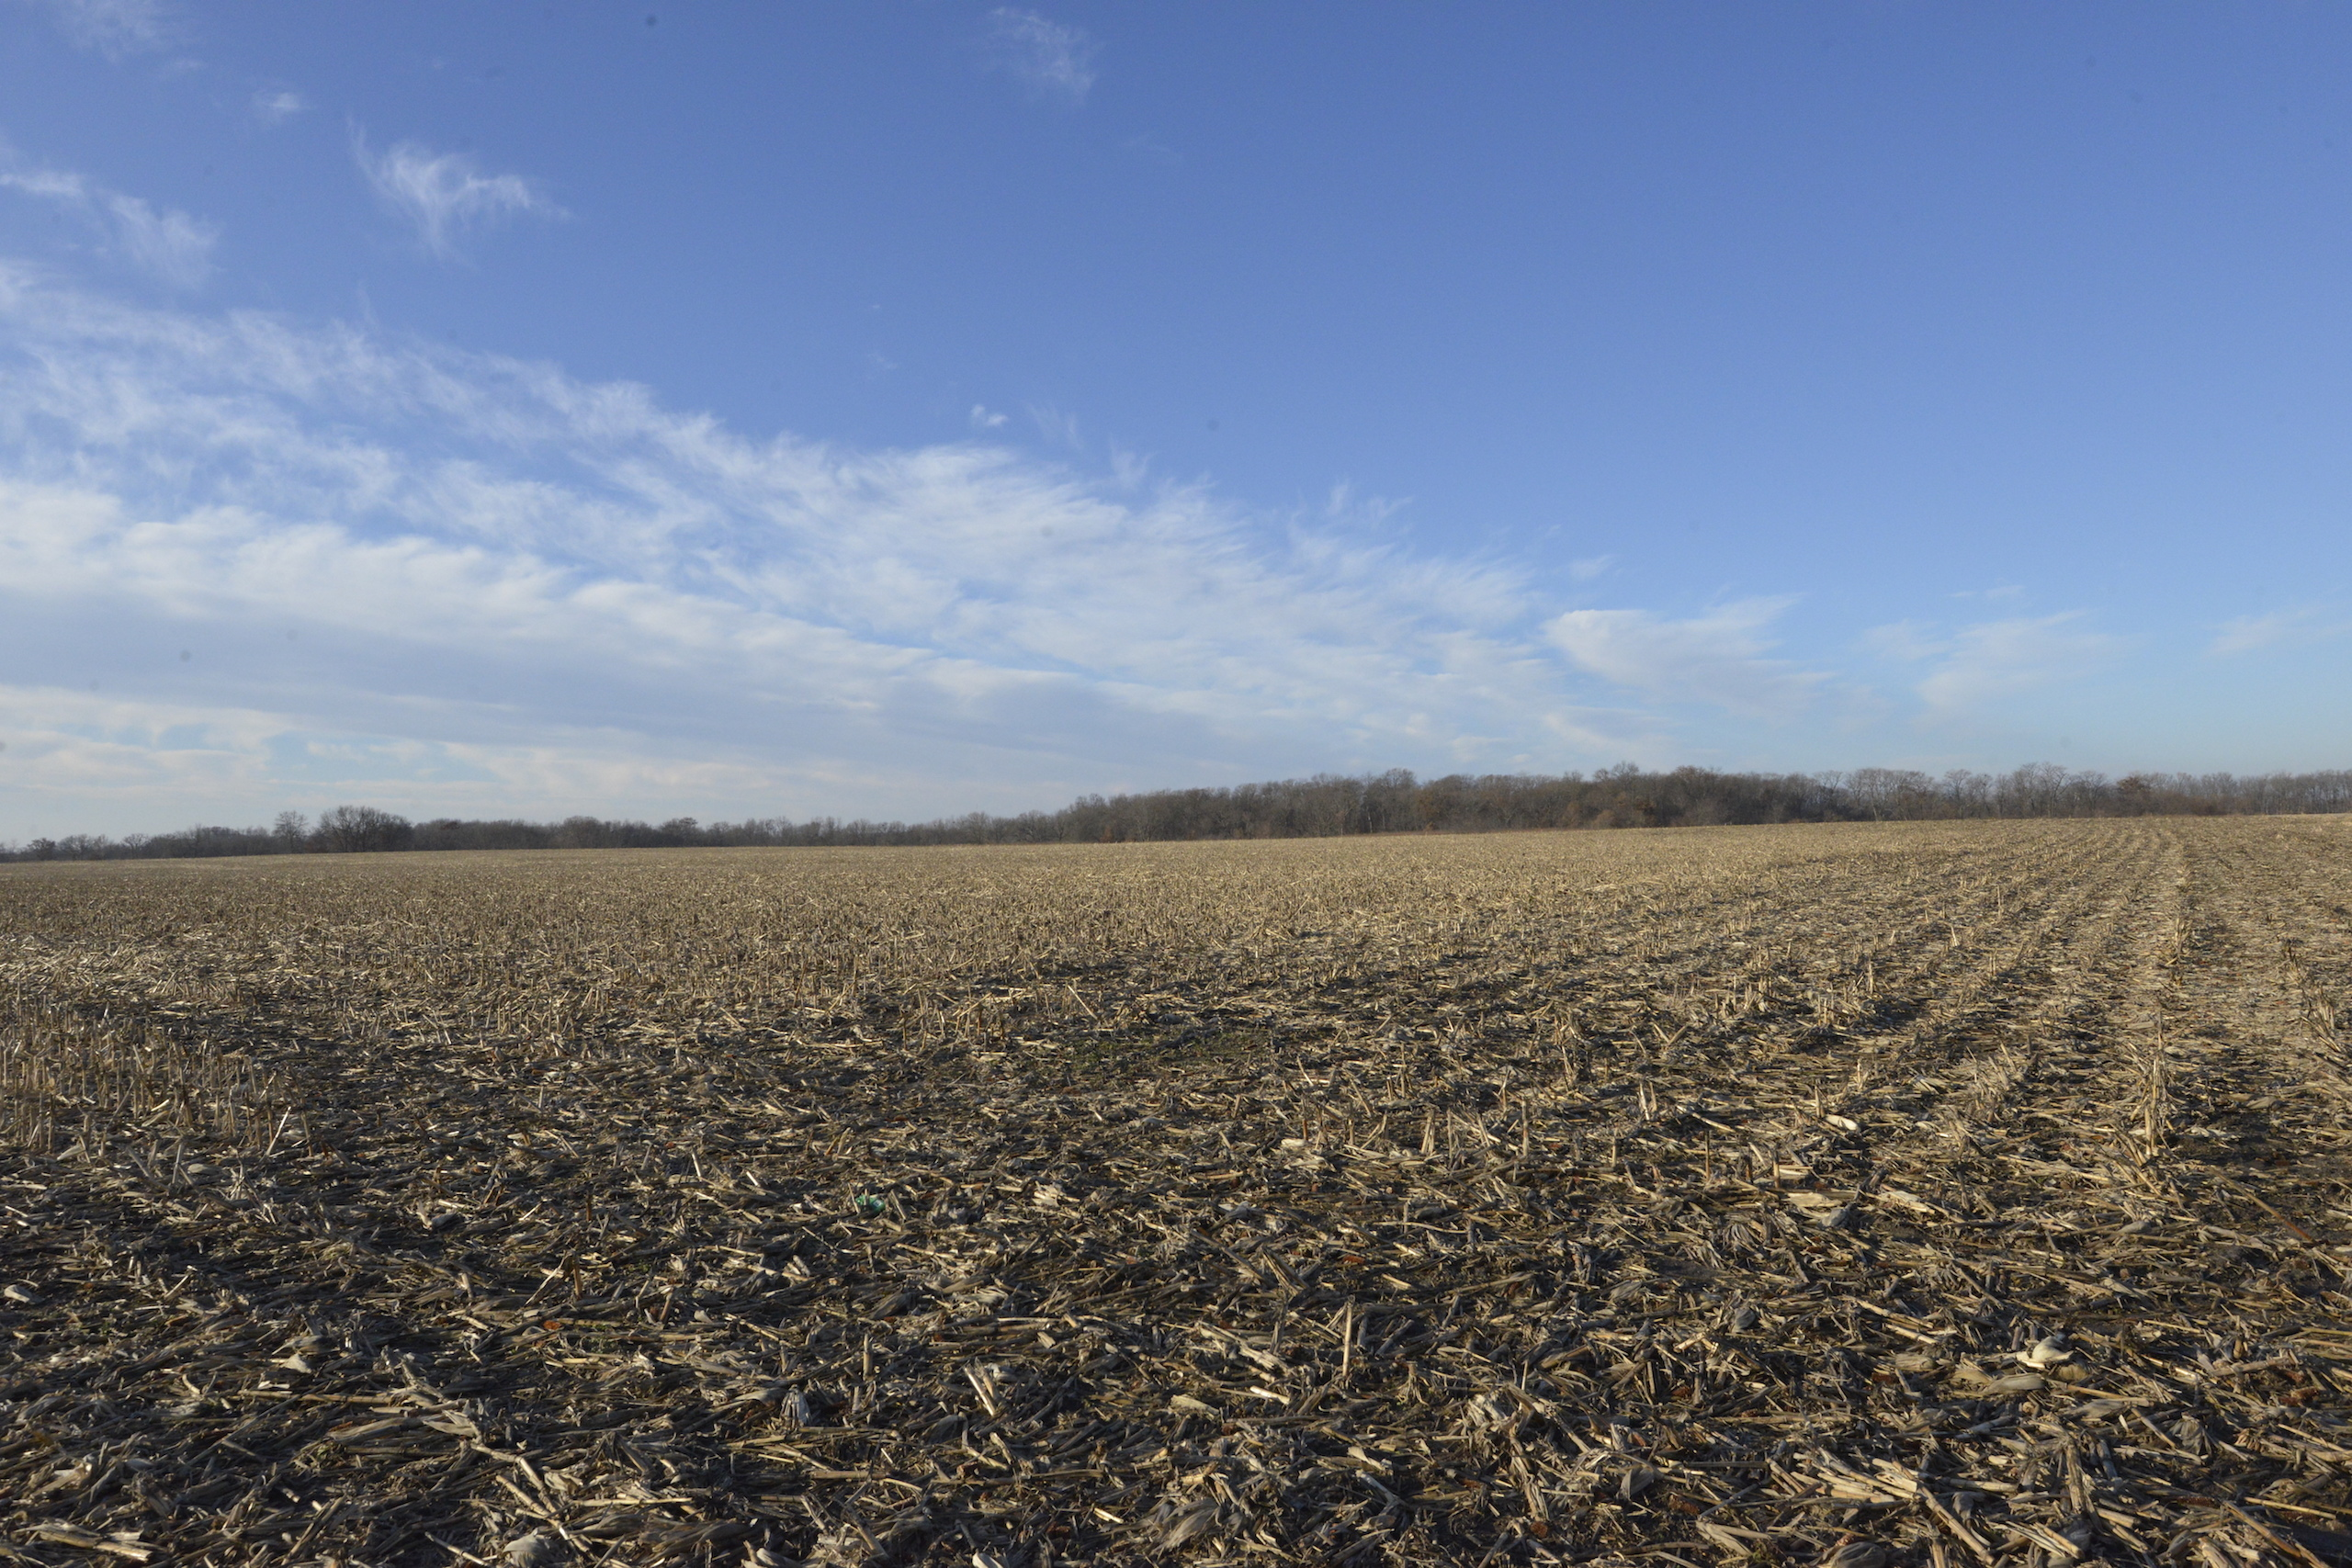 Brown Il Tract 1 36 0641